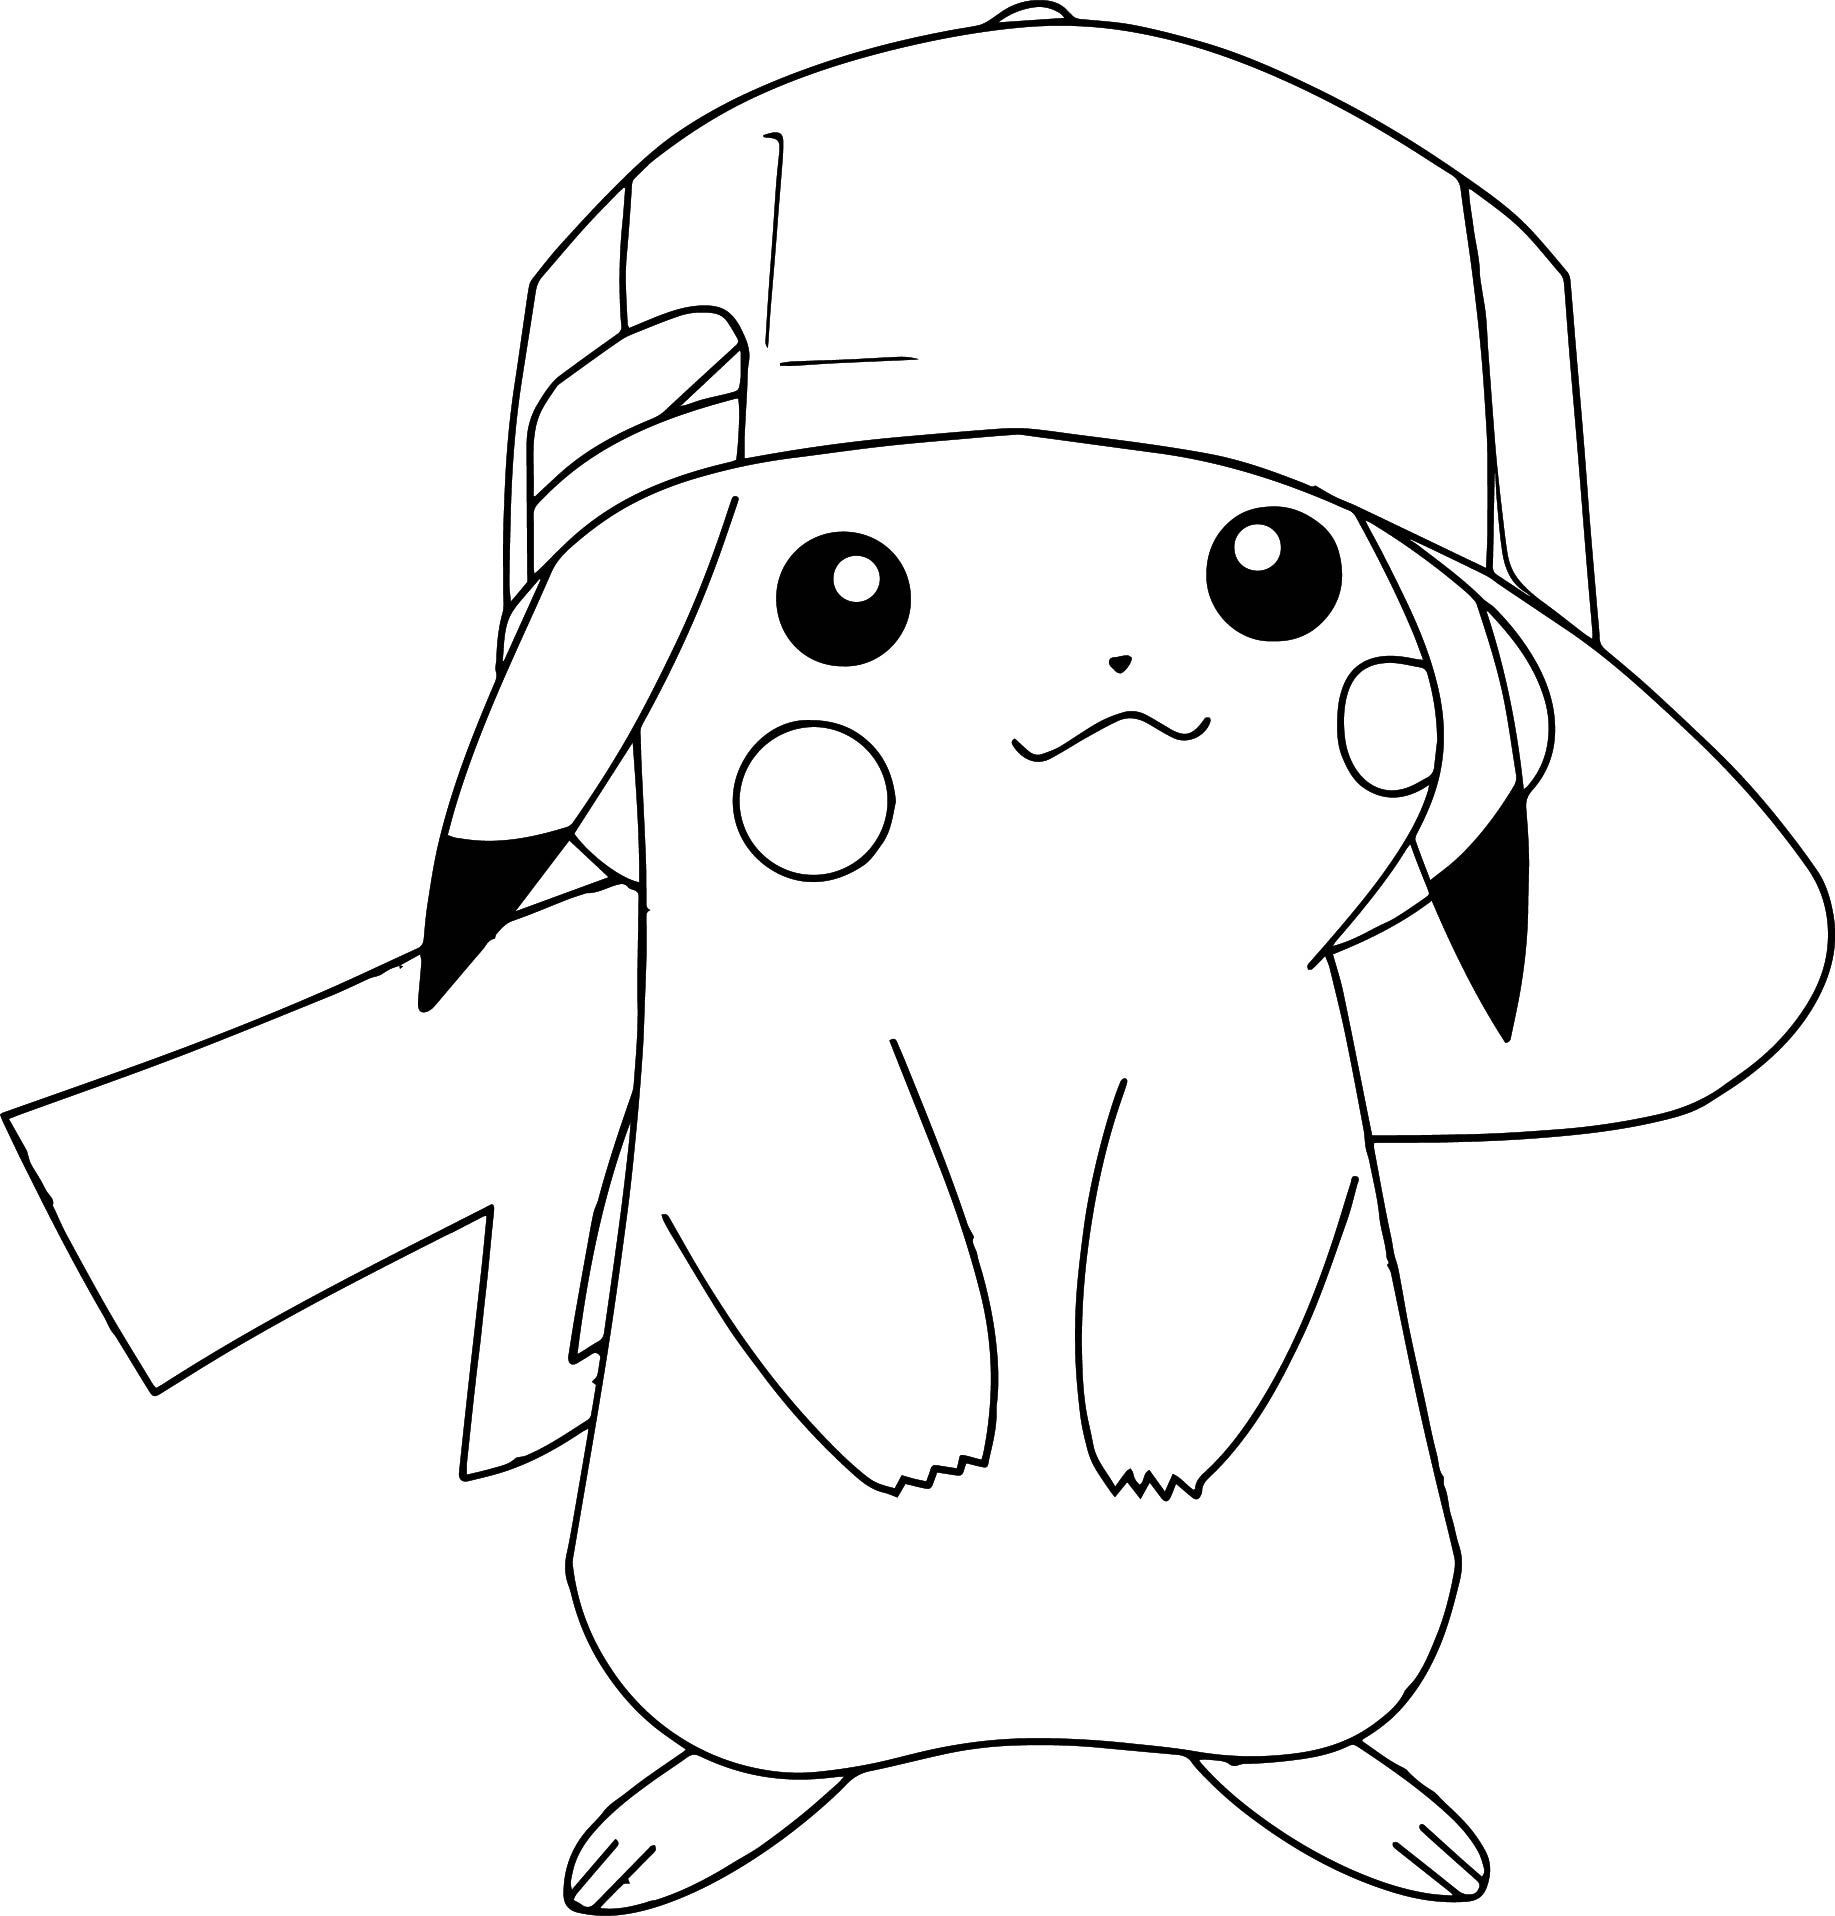 coloring pages of pikachu pokemon thunderbolt attack 10 pikachu coloring pages of pikachu coloring pages